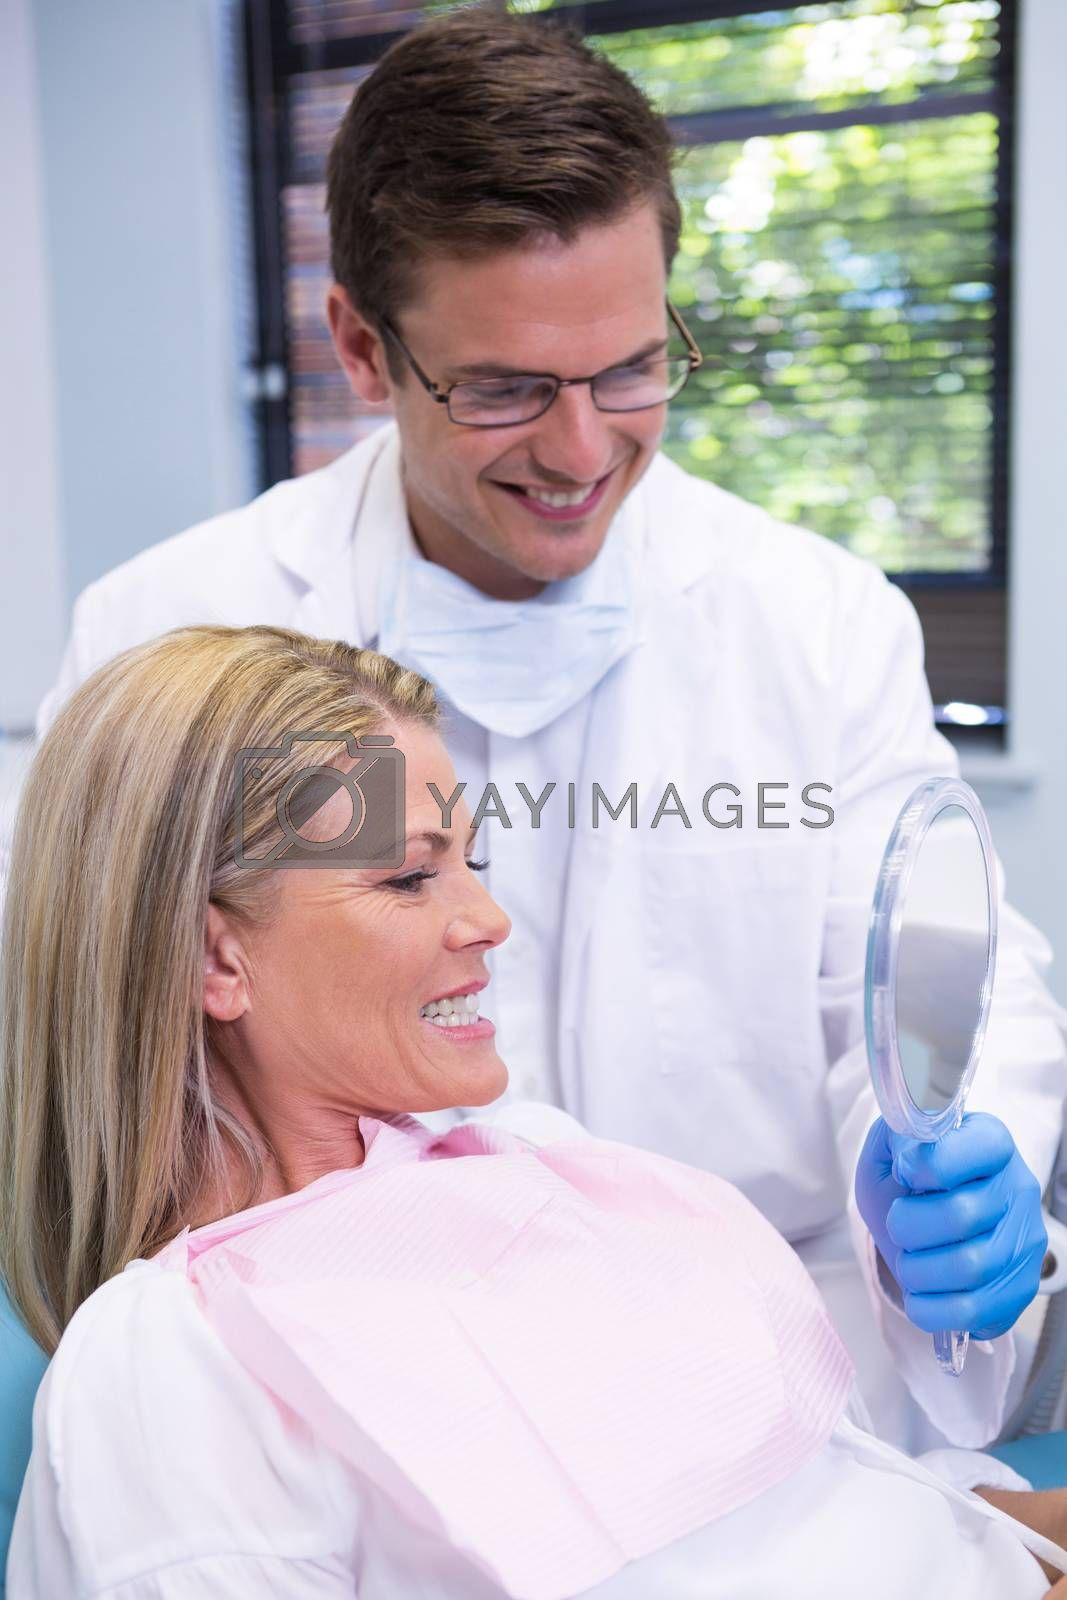 Dentist showing mirror to smiling patient by Wavebreakmedia